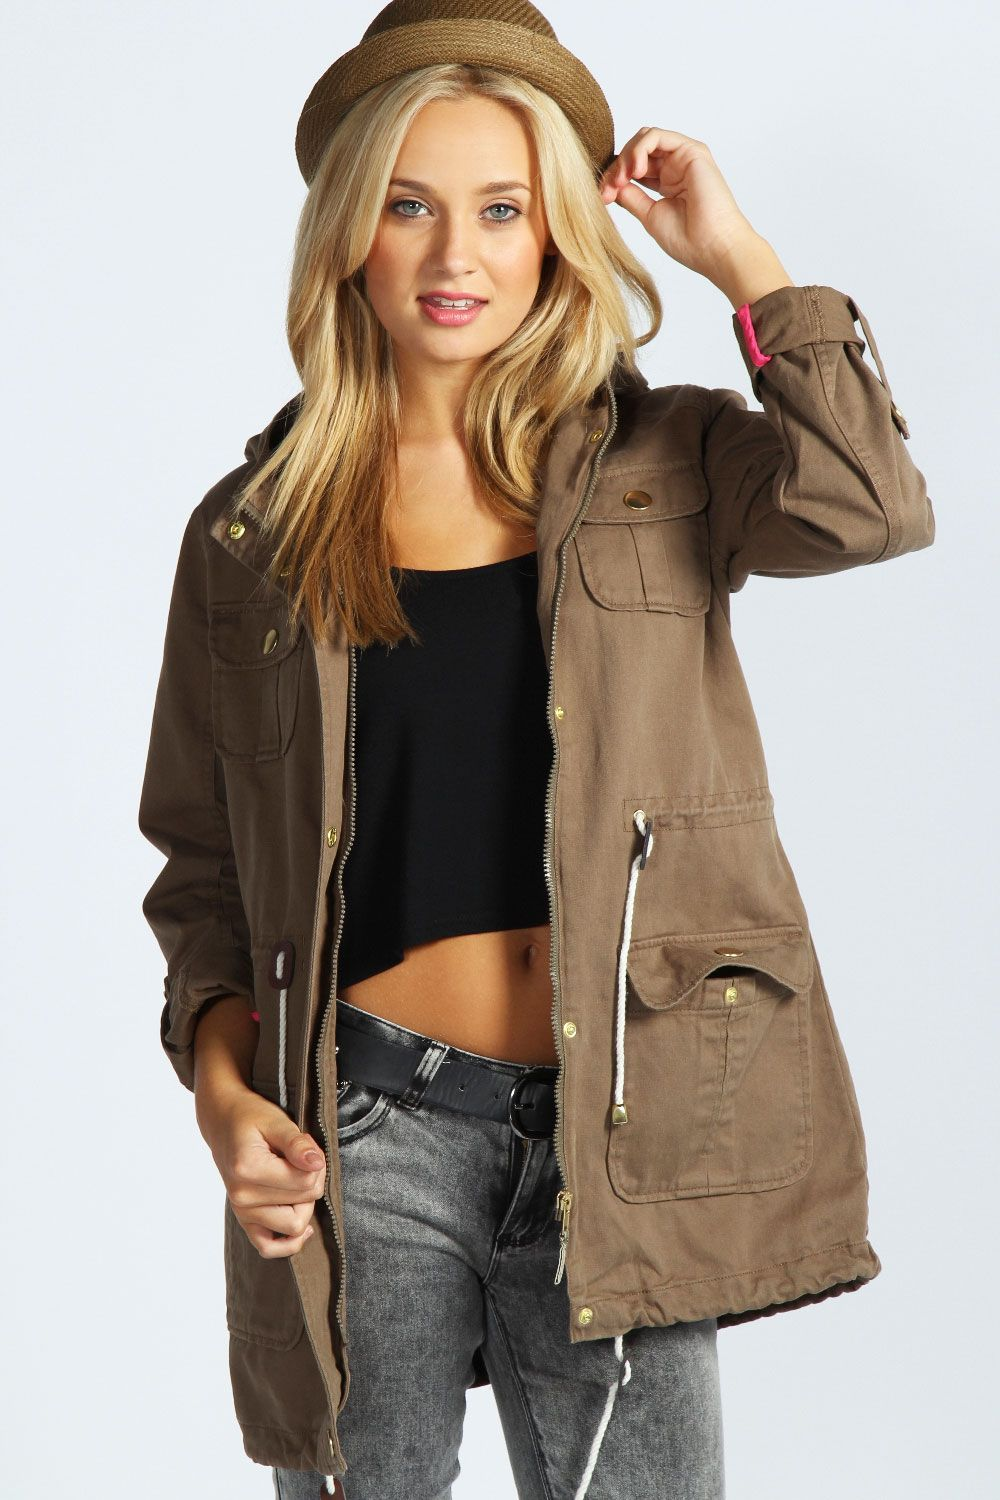 khaki-parka-jacket-for-women | Parka Jacket | Pinterest | Parka ...